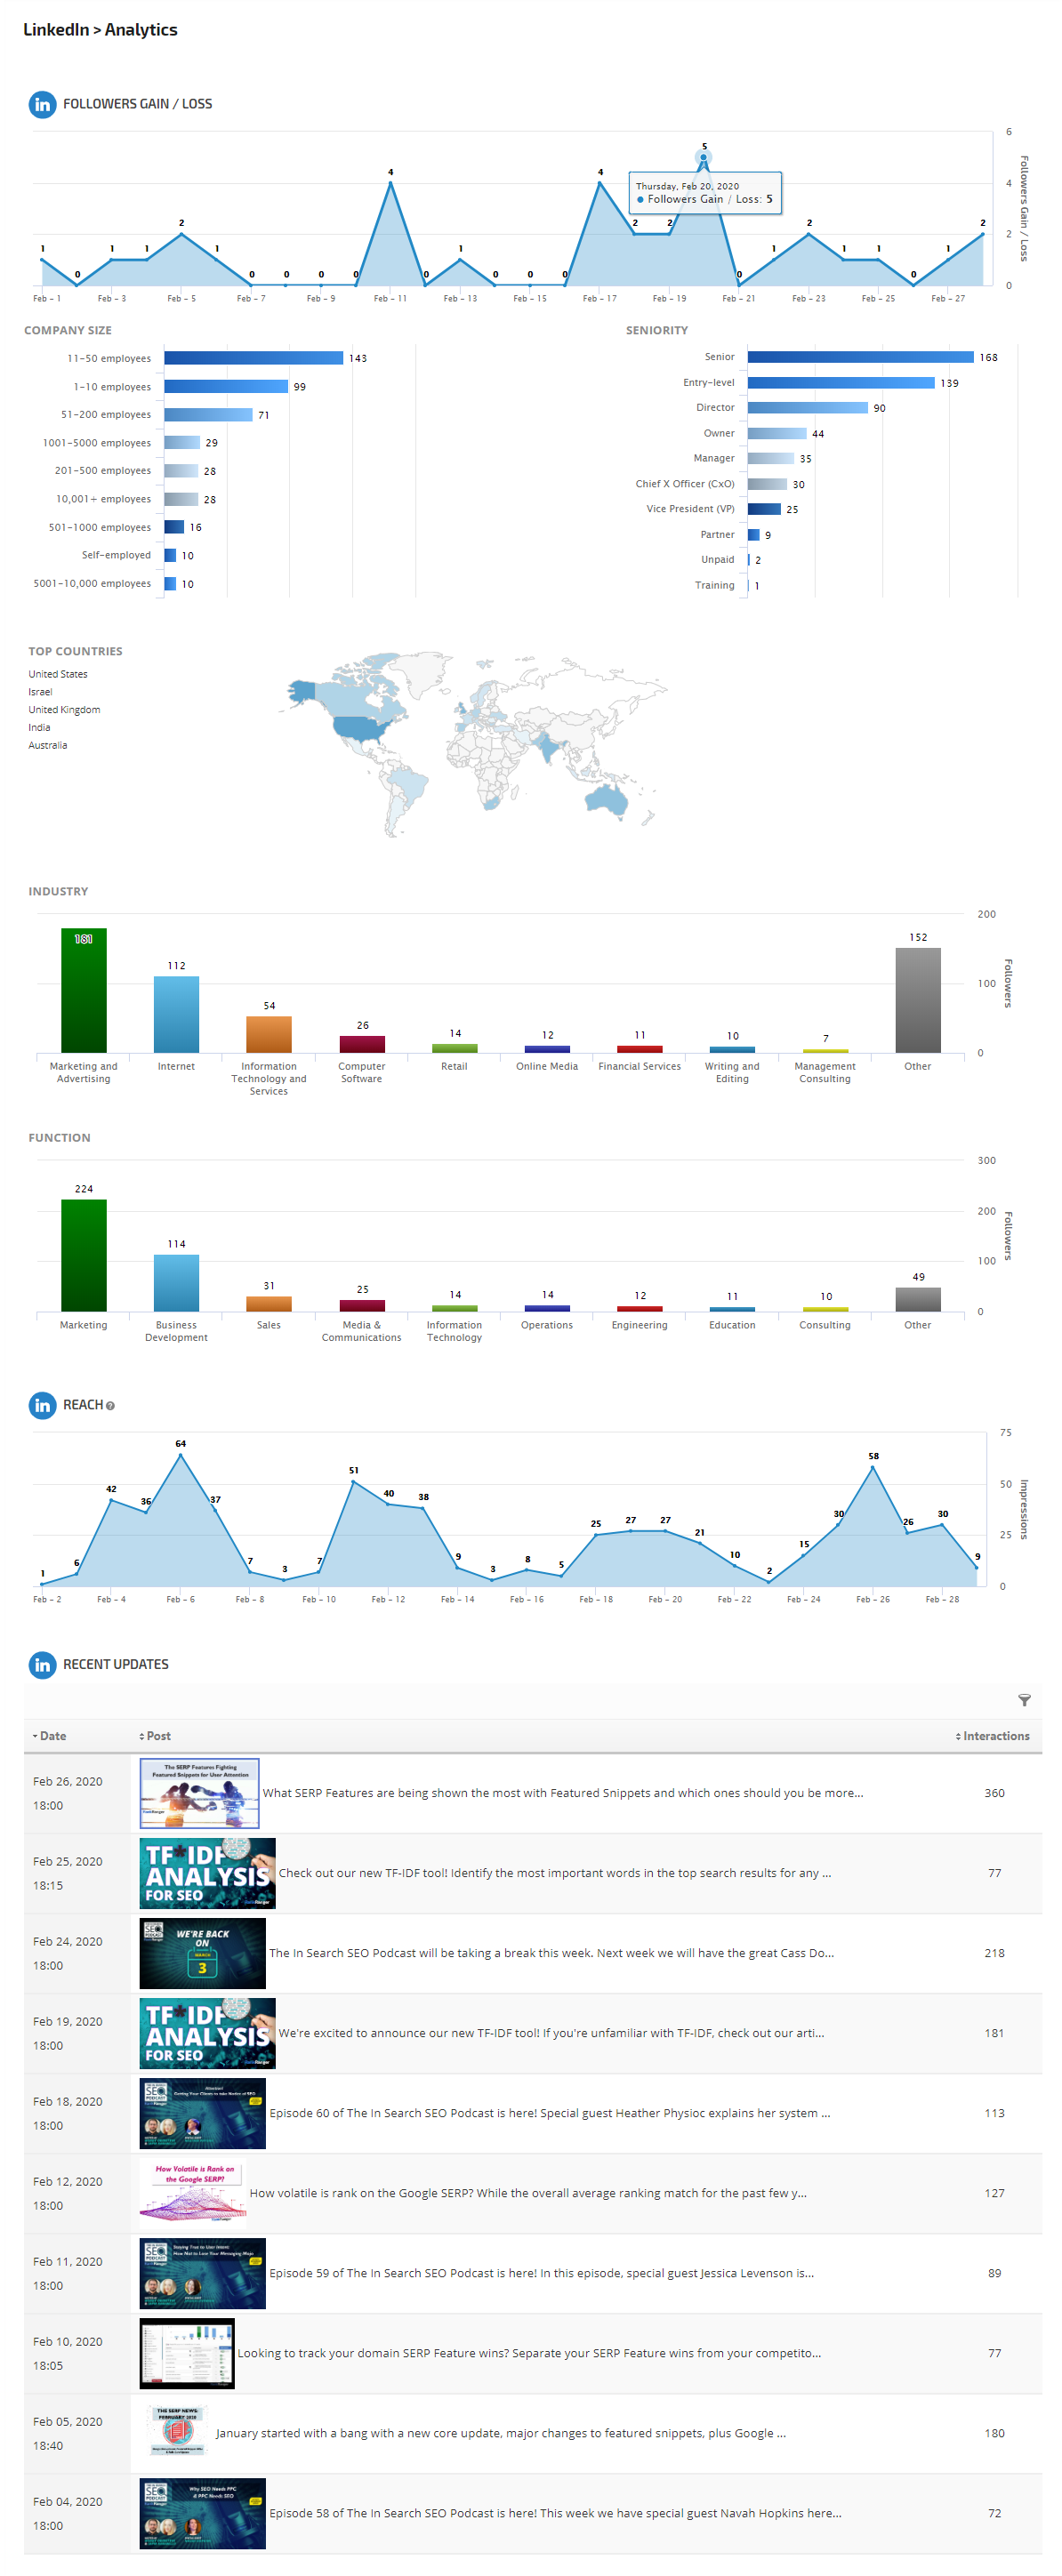 LinkedIn Page Analytics report